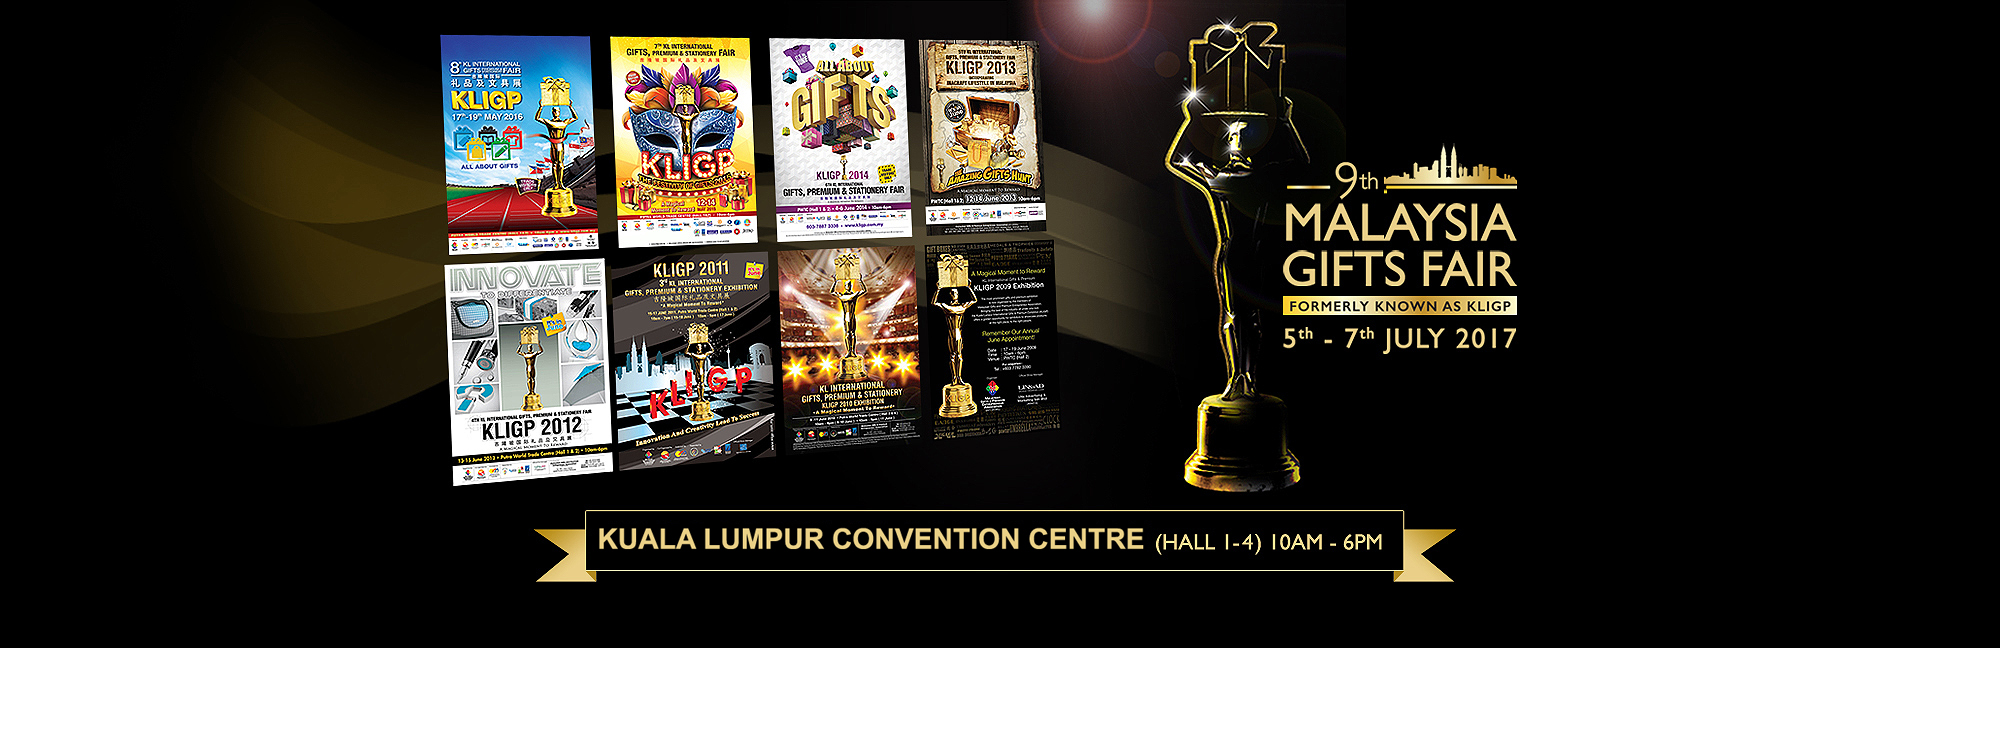 Gifts From Malaysia: Gifts, Premium, Stationery Fair